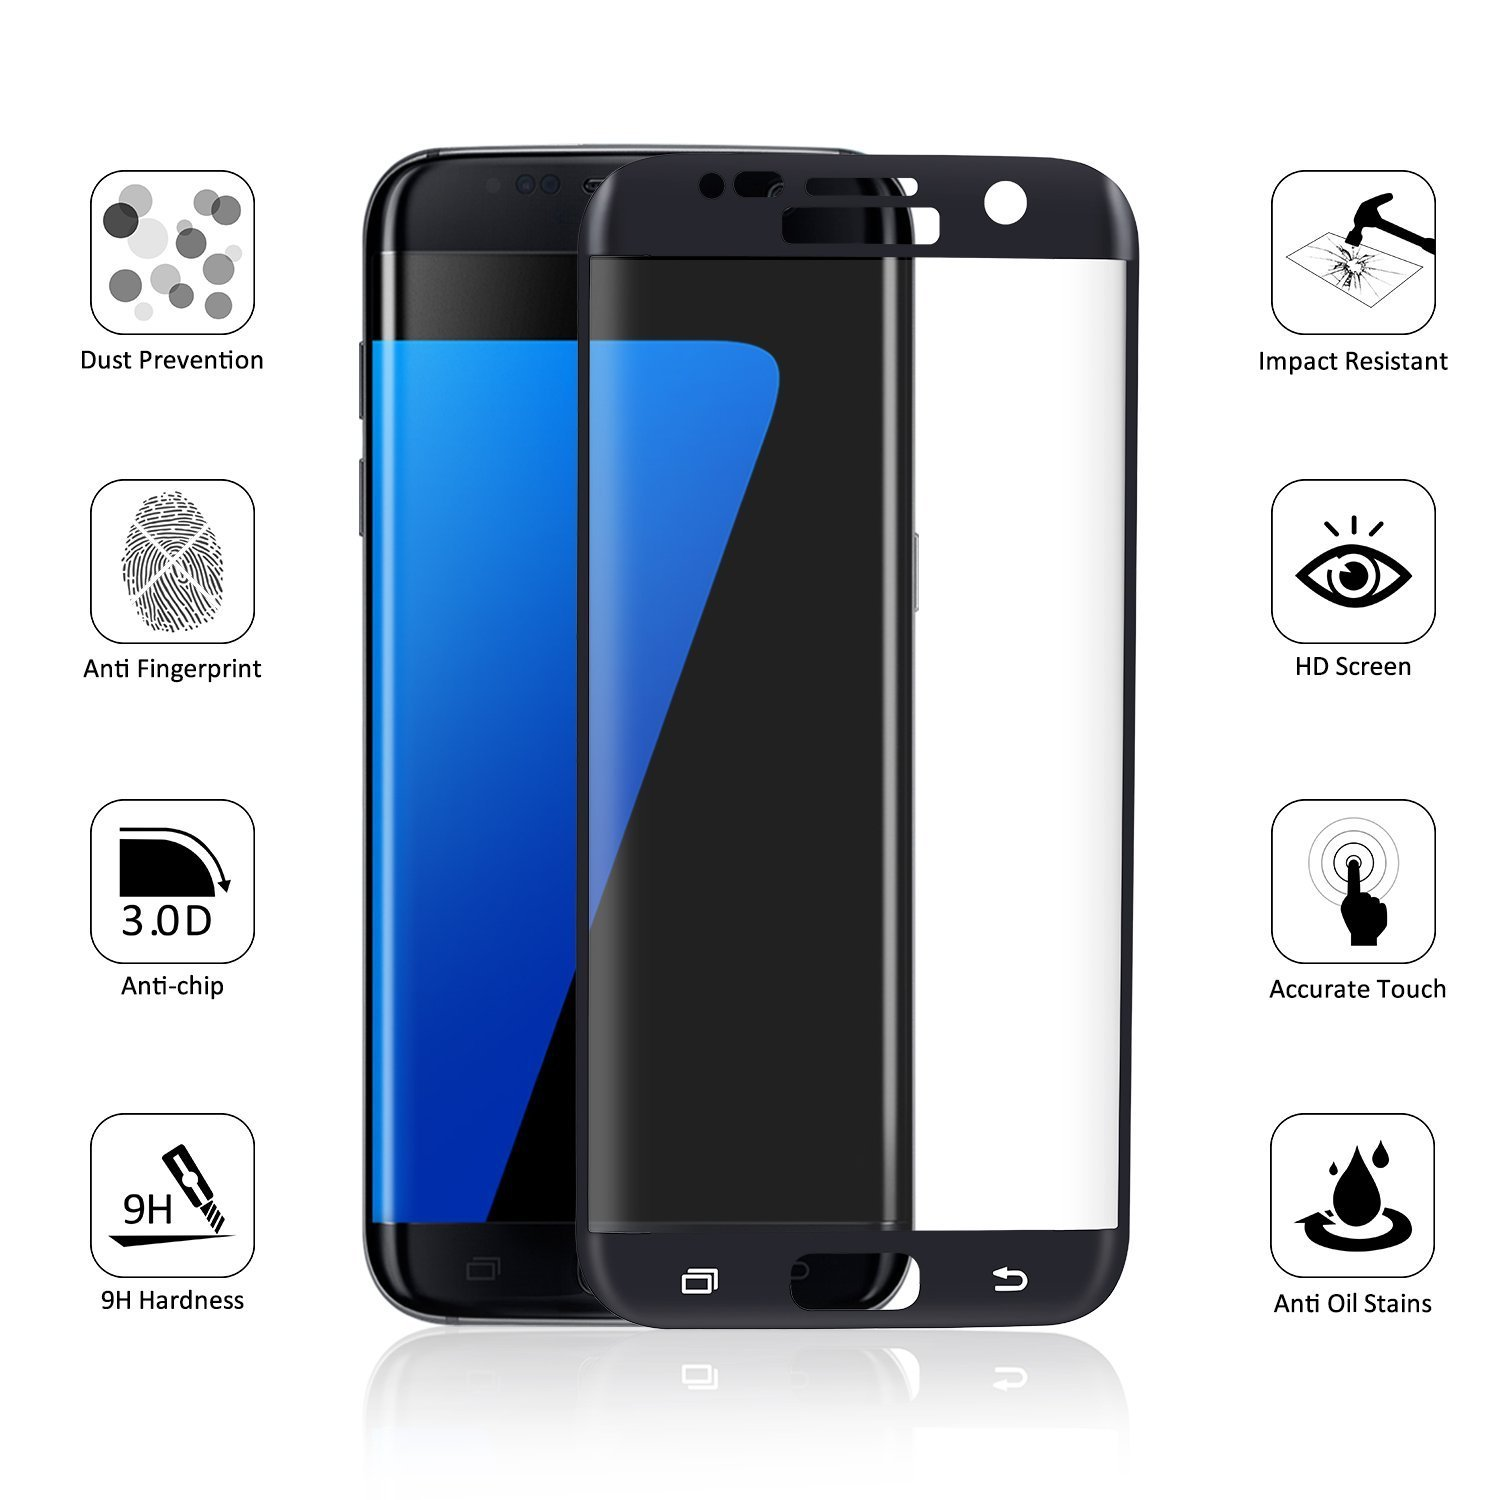 Amazon Samsung Galaxy S6 S7 Screen Protector Vanki Ultra HD Clear Full Coverage Screen Protector for S6 Edge S7 Edge Clothing